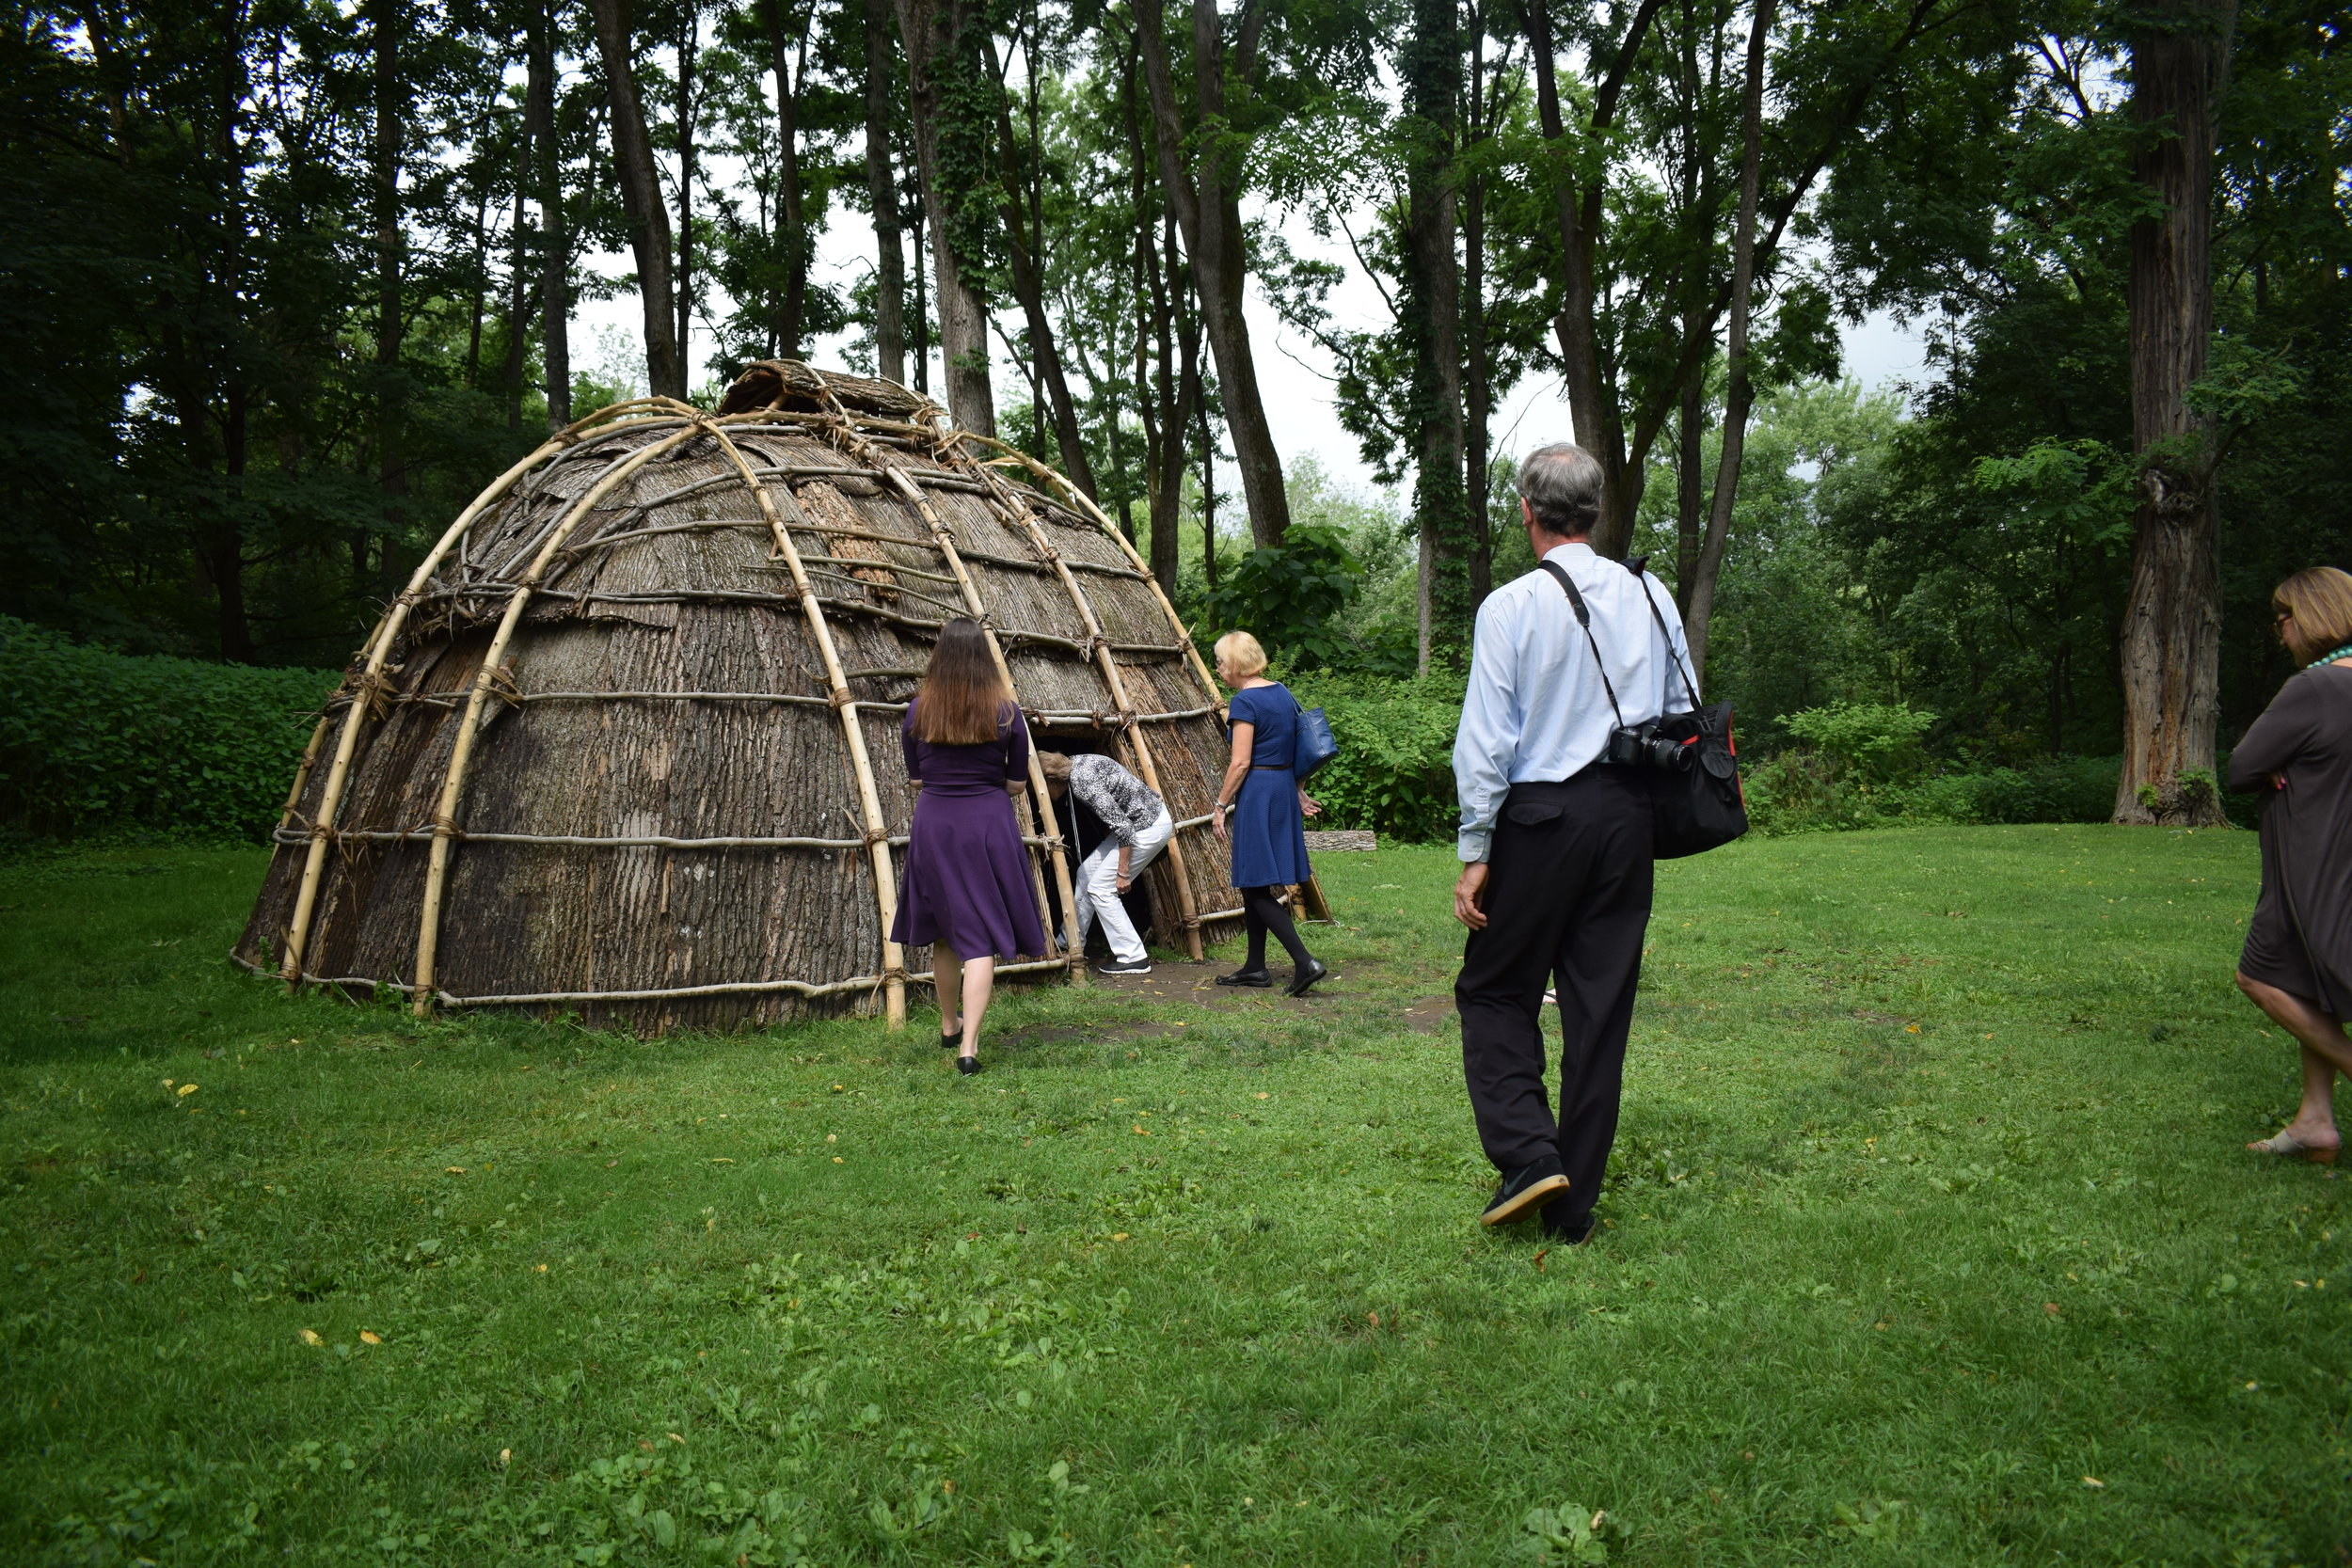 Guests enter the wigwam